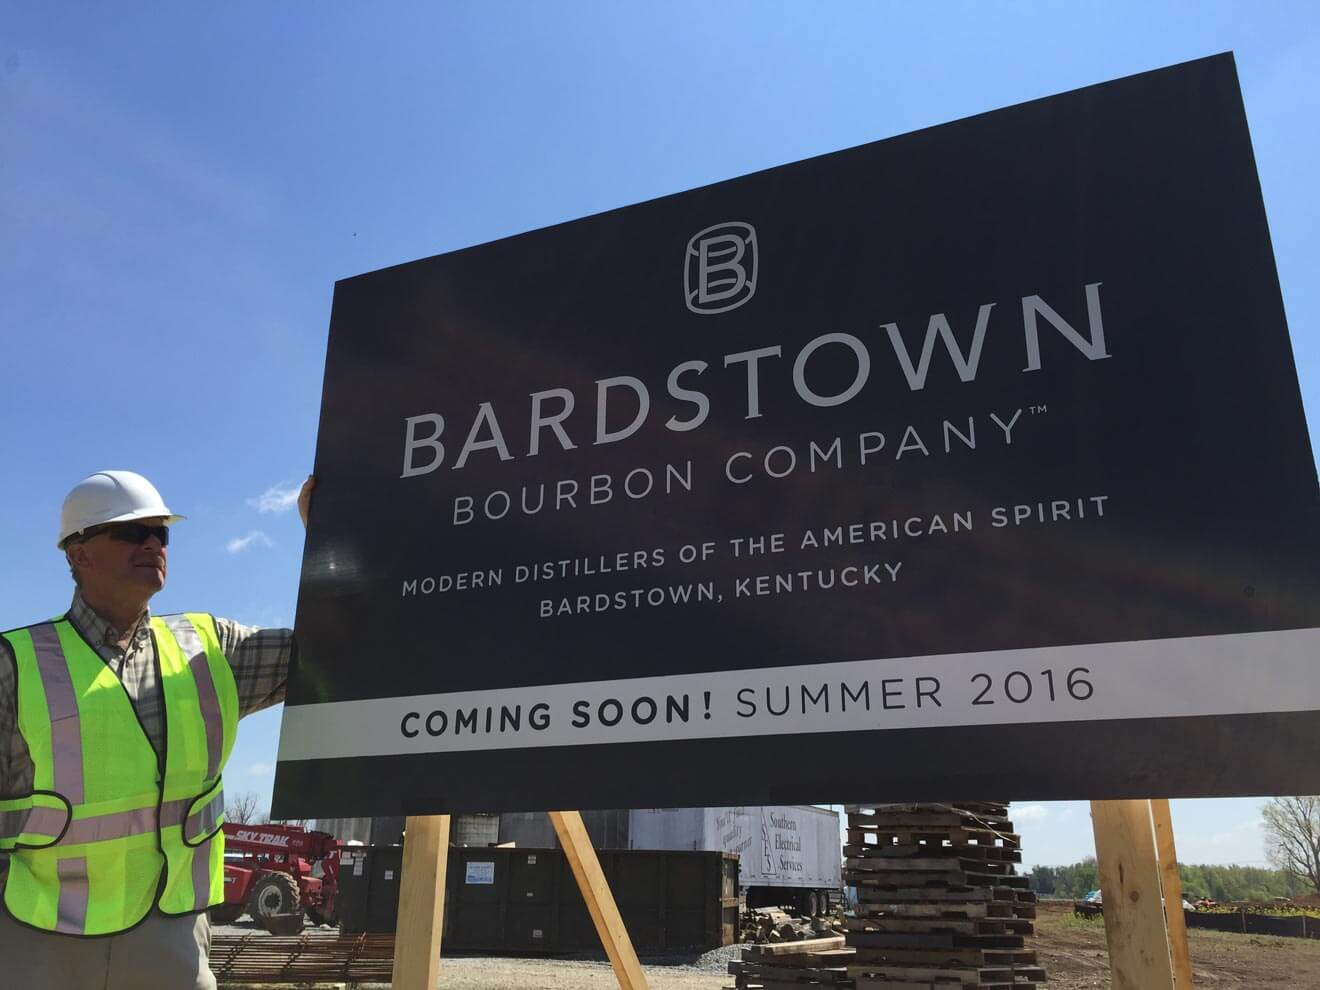 Bardstown Bourbon Company Outdoor Signage